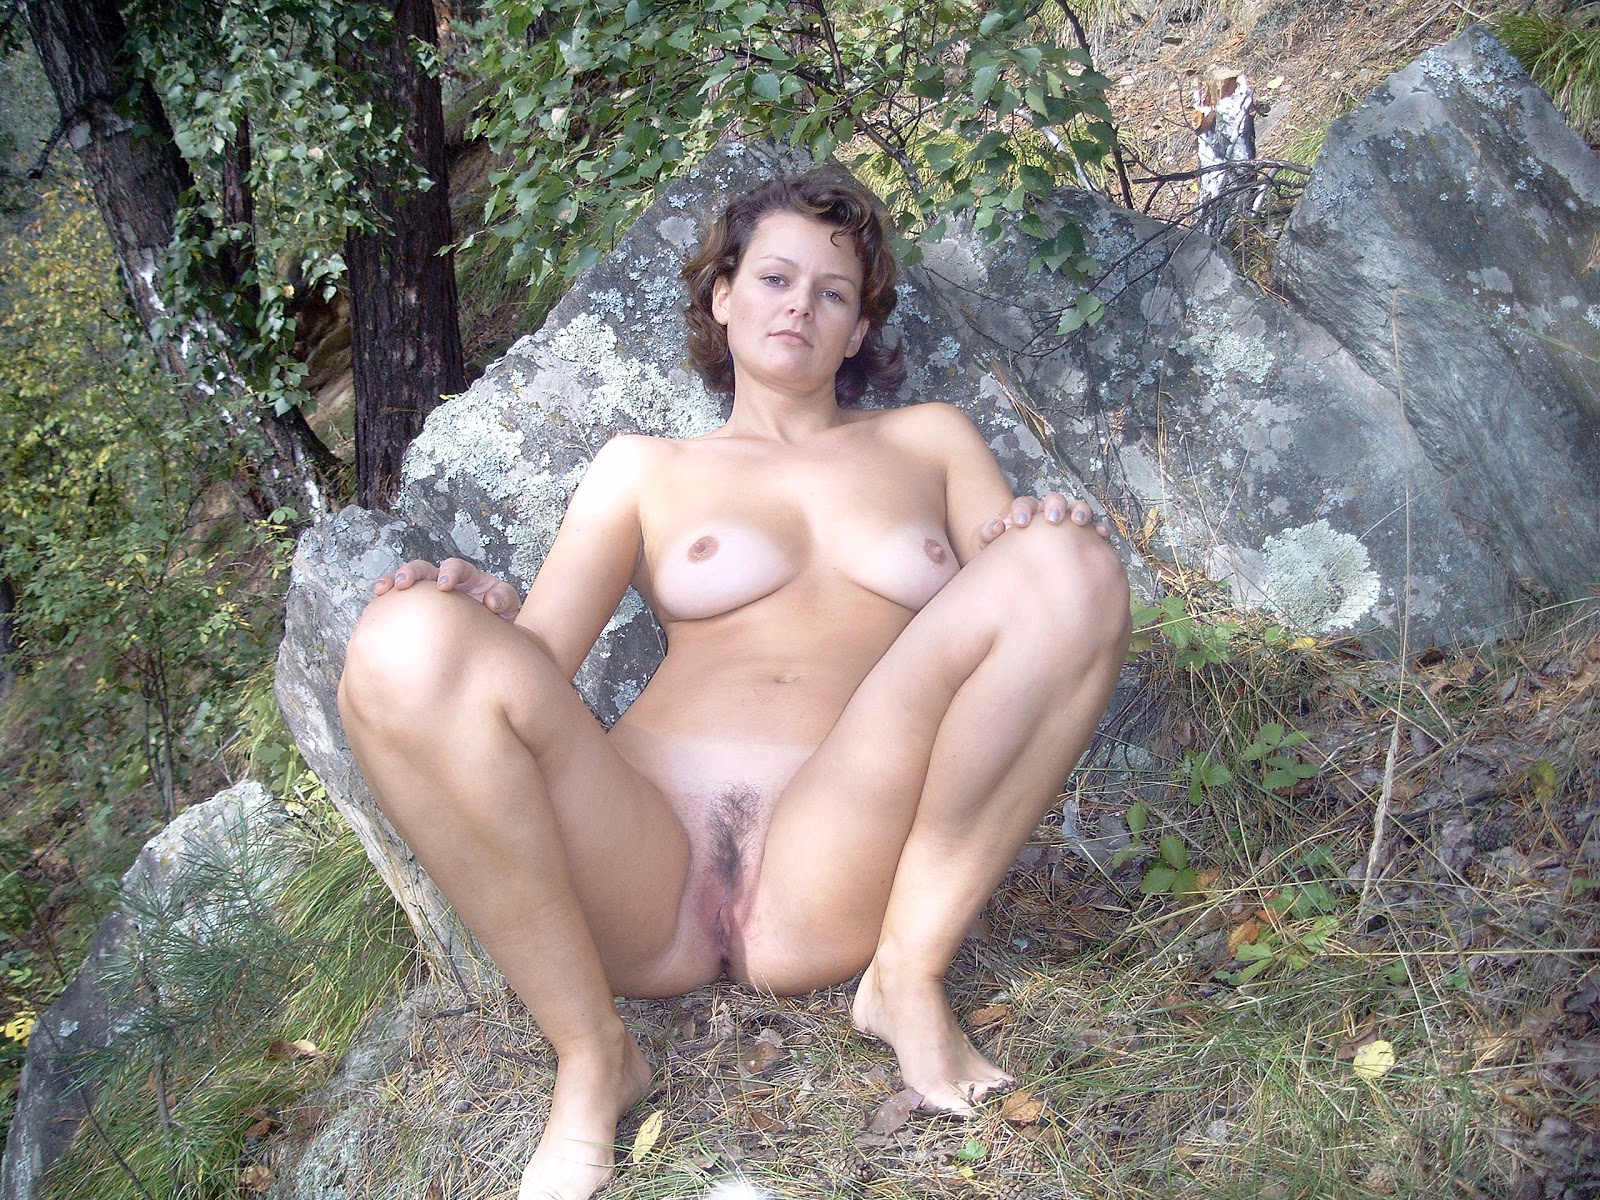 Amature Naked Women